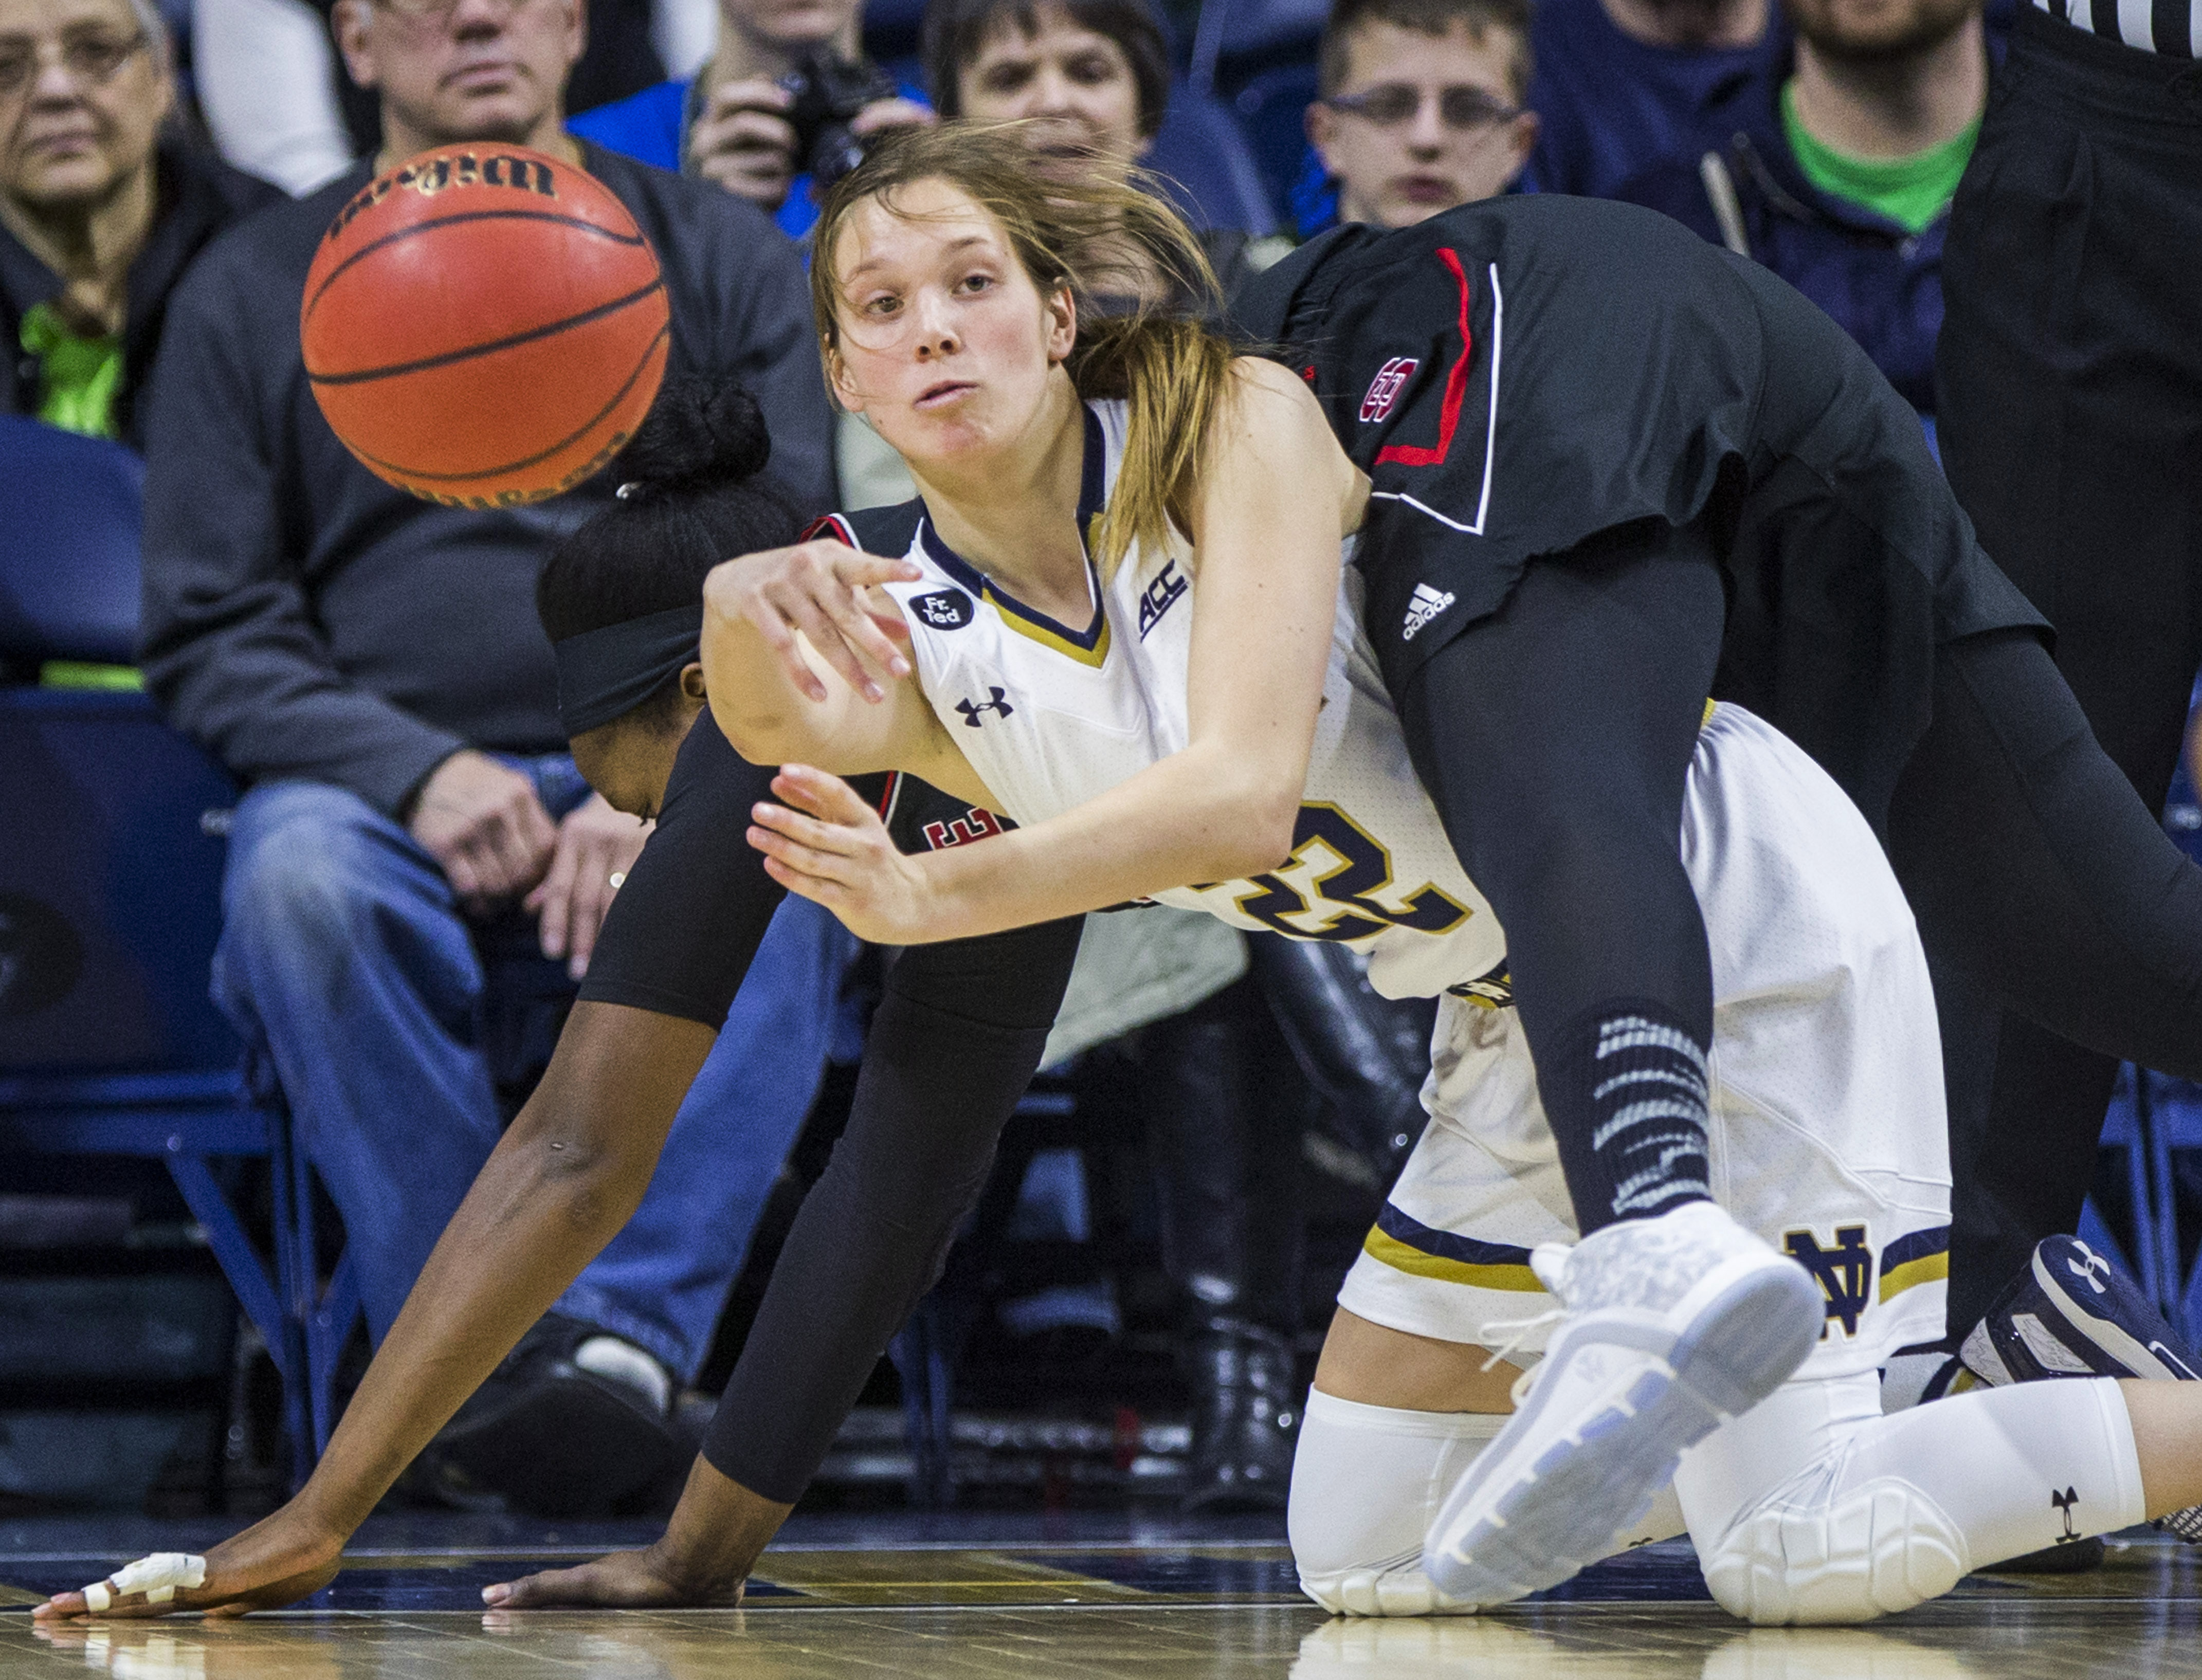 Notre Dame's Madison Cable (22) passes the ball as North Carolina State's Jennifer Mathurin (11) falls onto her during the first half of an NCAA college basketball game Thursday, Feb. 4, 2016, in South Bend, Ind. (AP Photo/Robert Franklin)